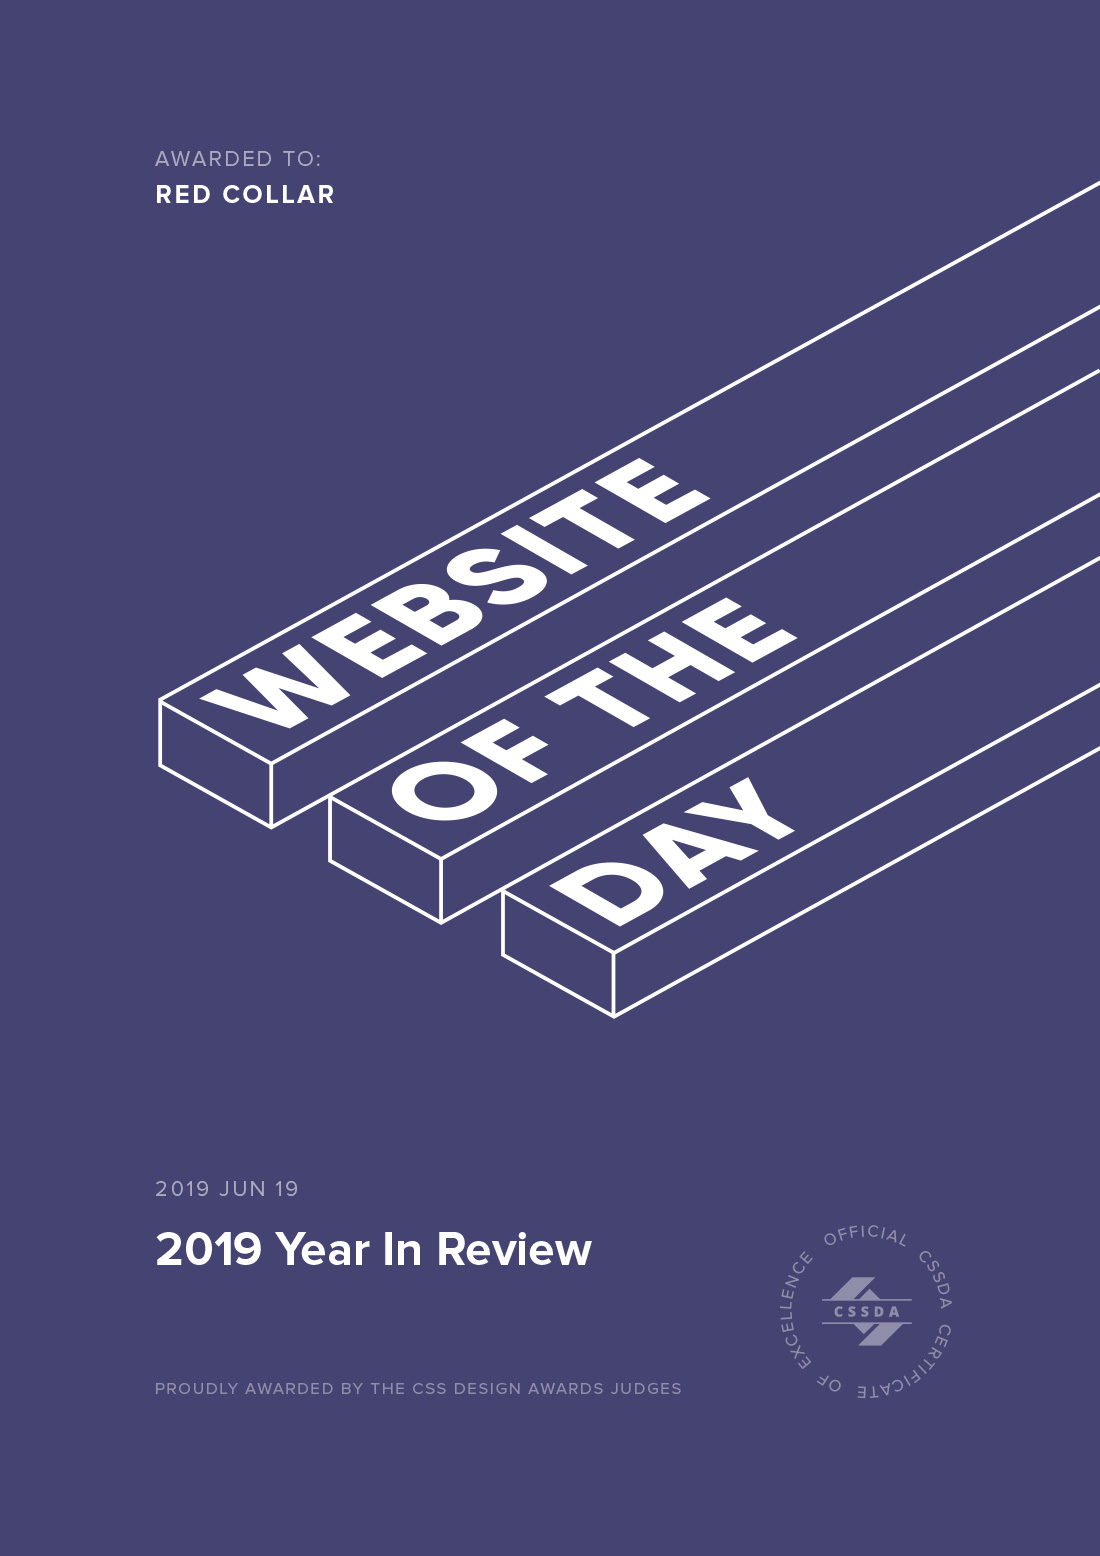 Website of the Day Award Certificate